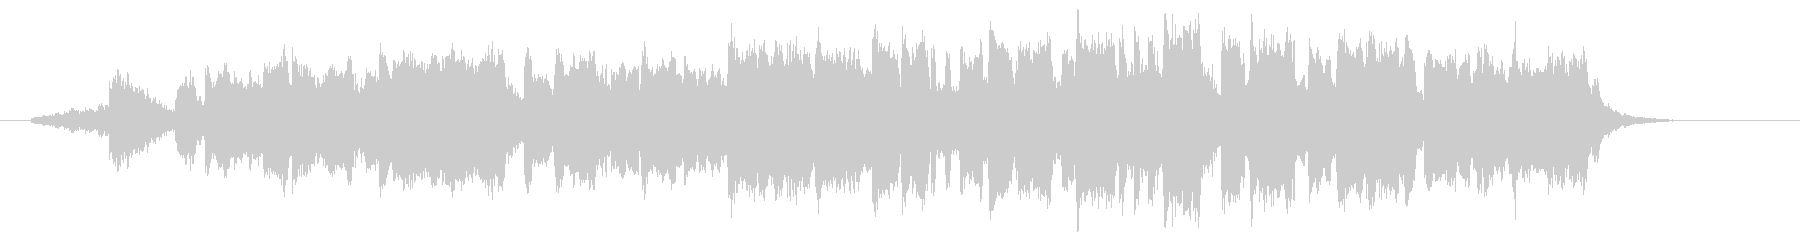 BGM of the beginning of a magnificent journey's unreproduced waveform